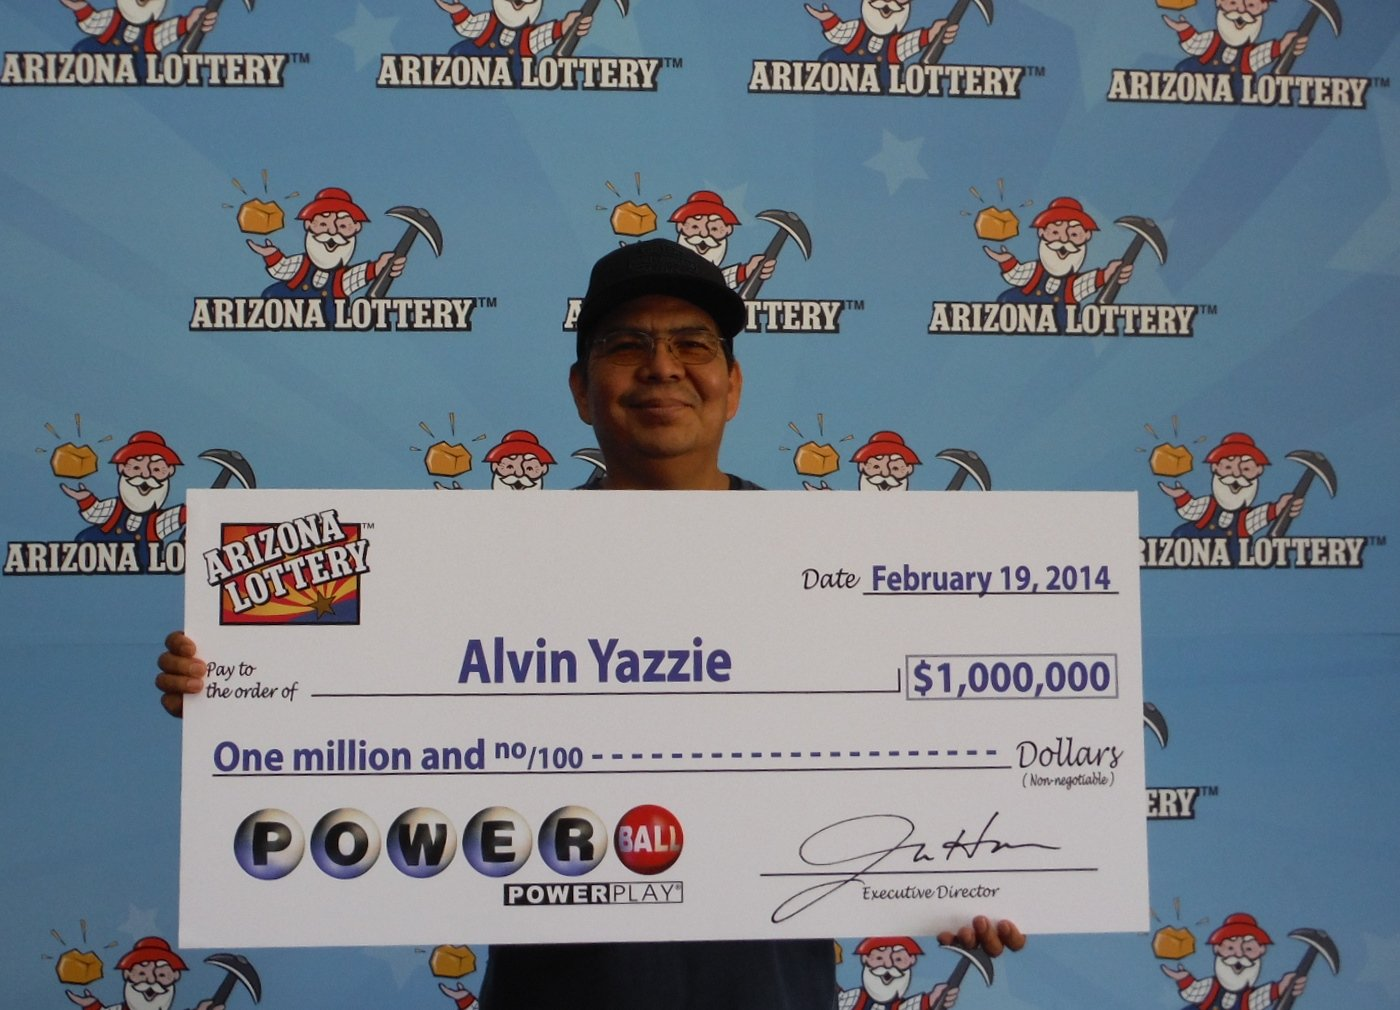 (Source: Arizona Lottery)